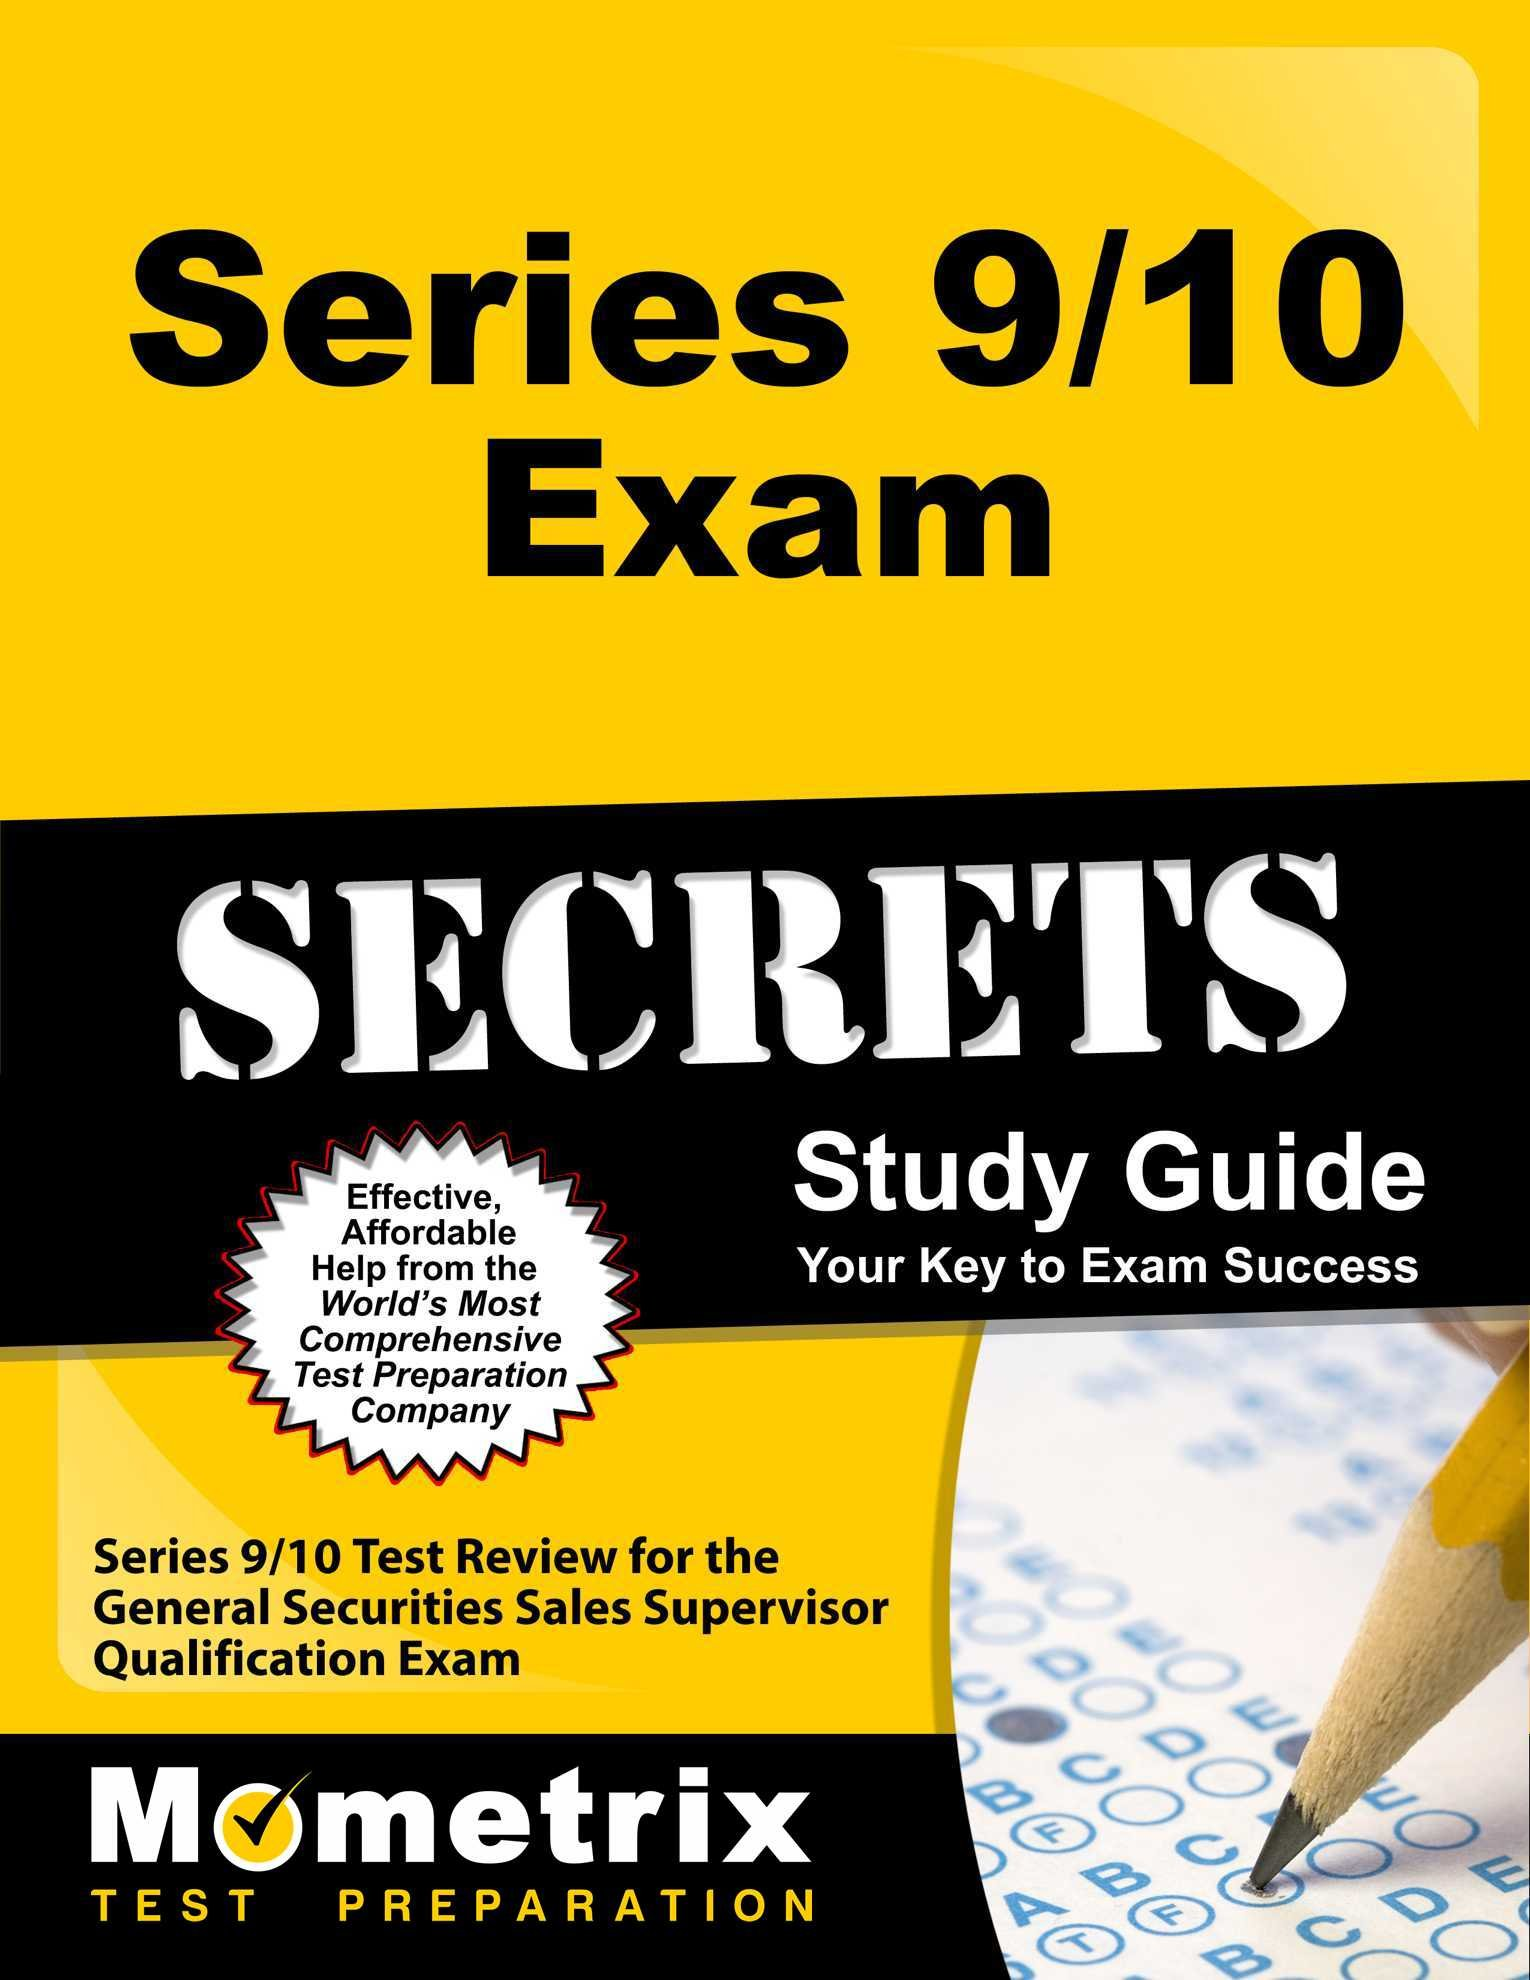 Series 9/10 Exam Secrets Study Guide: Series 9/10 Test Review for the General Securities Sales Supervisor Qualification Exam: Amazon.es: Series 9 and 10 ...